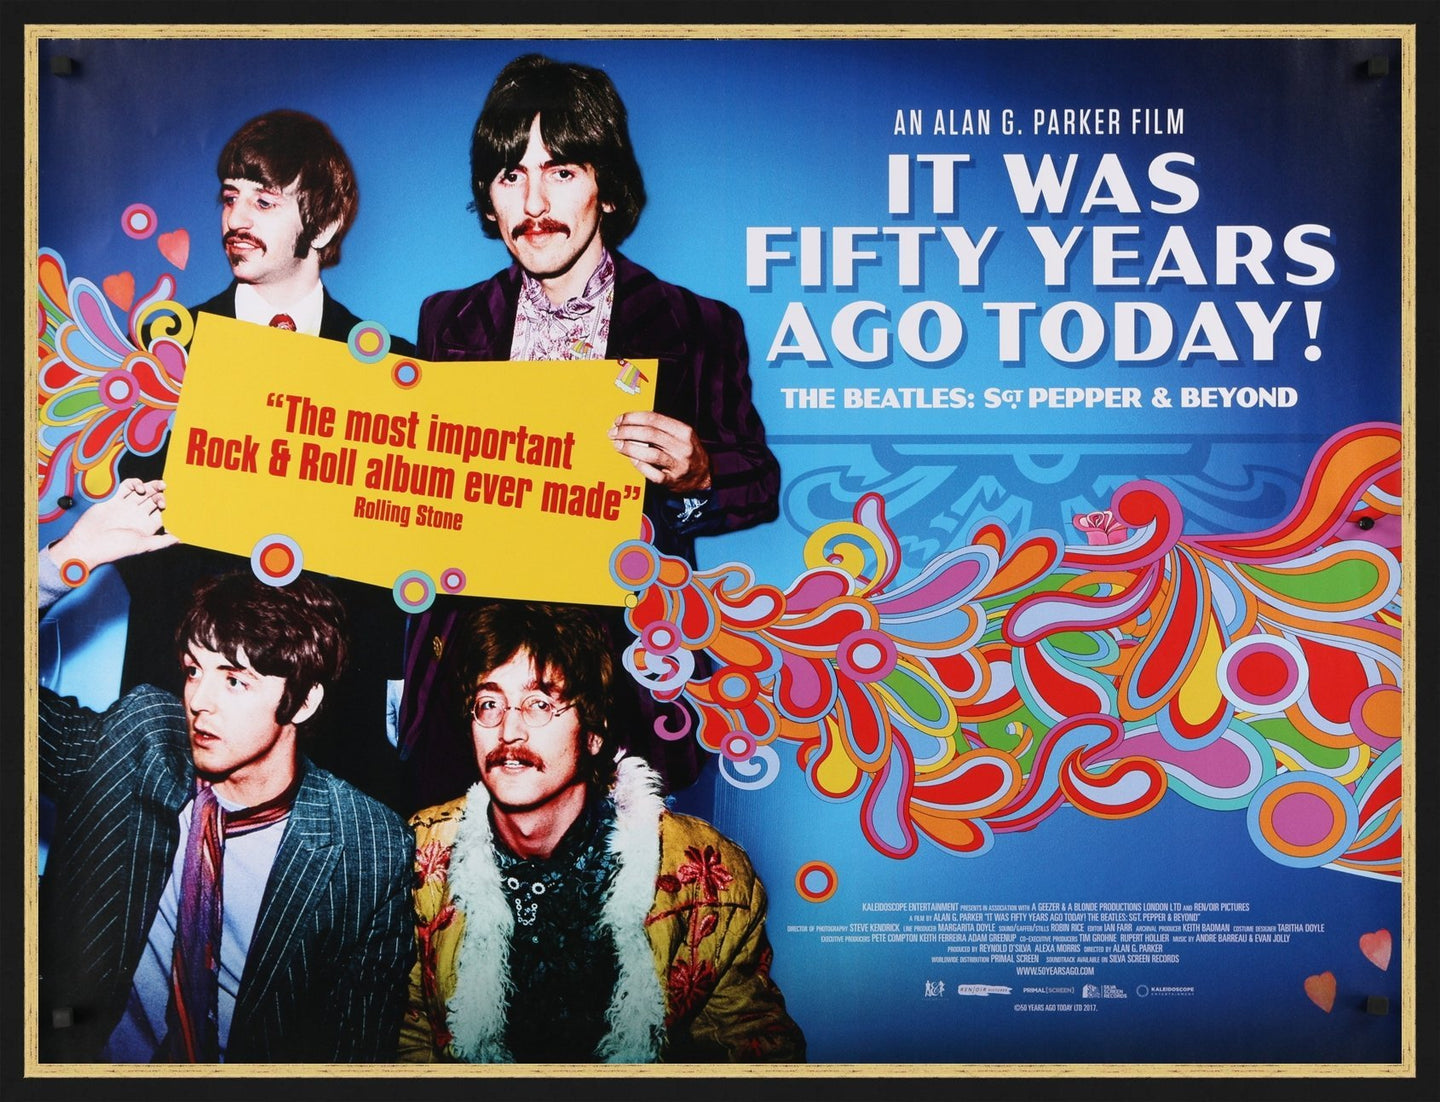 An original movie poster for the Beatles film It Was Fifty Years Ago Today